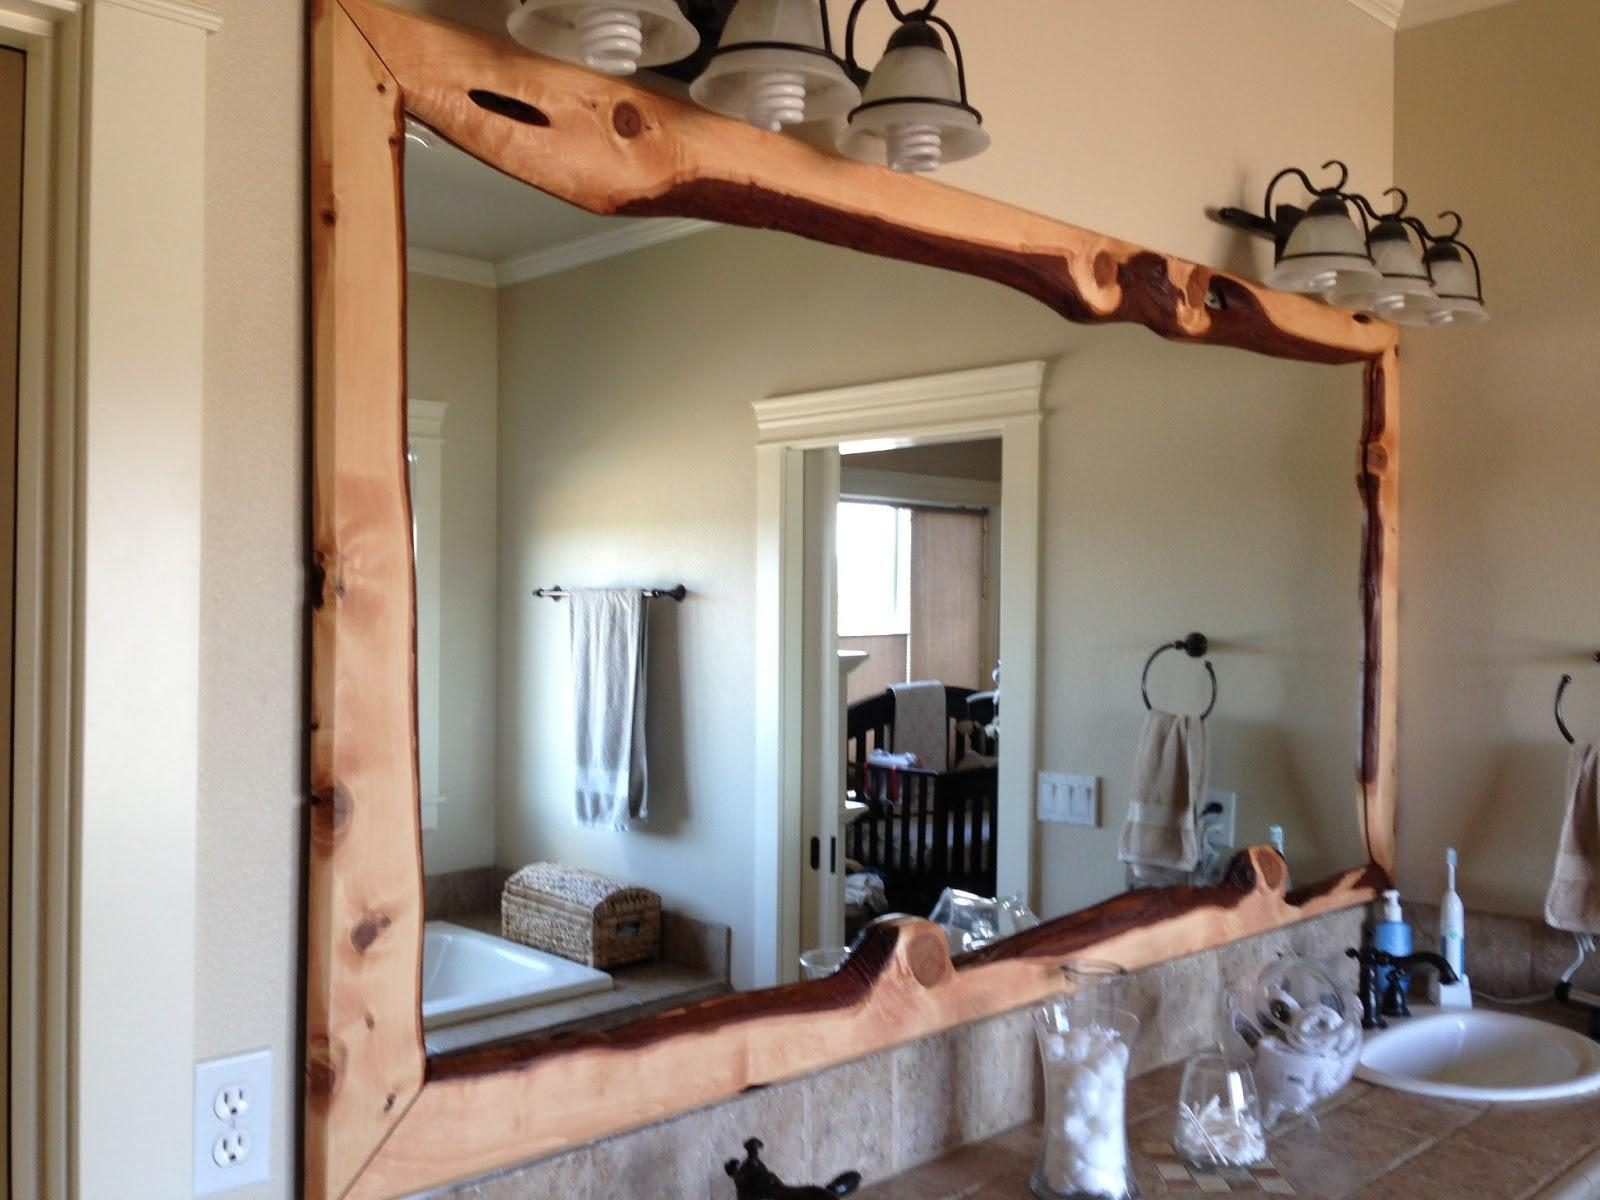 20 Ideas Of Decorative Wooden Mirrors